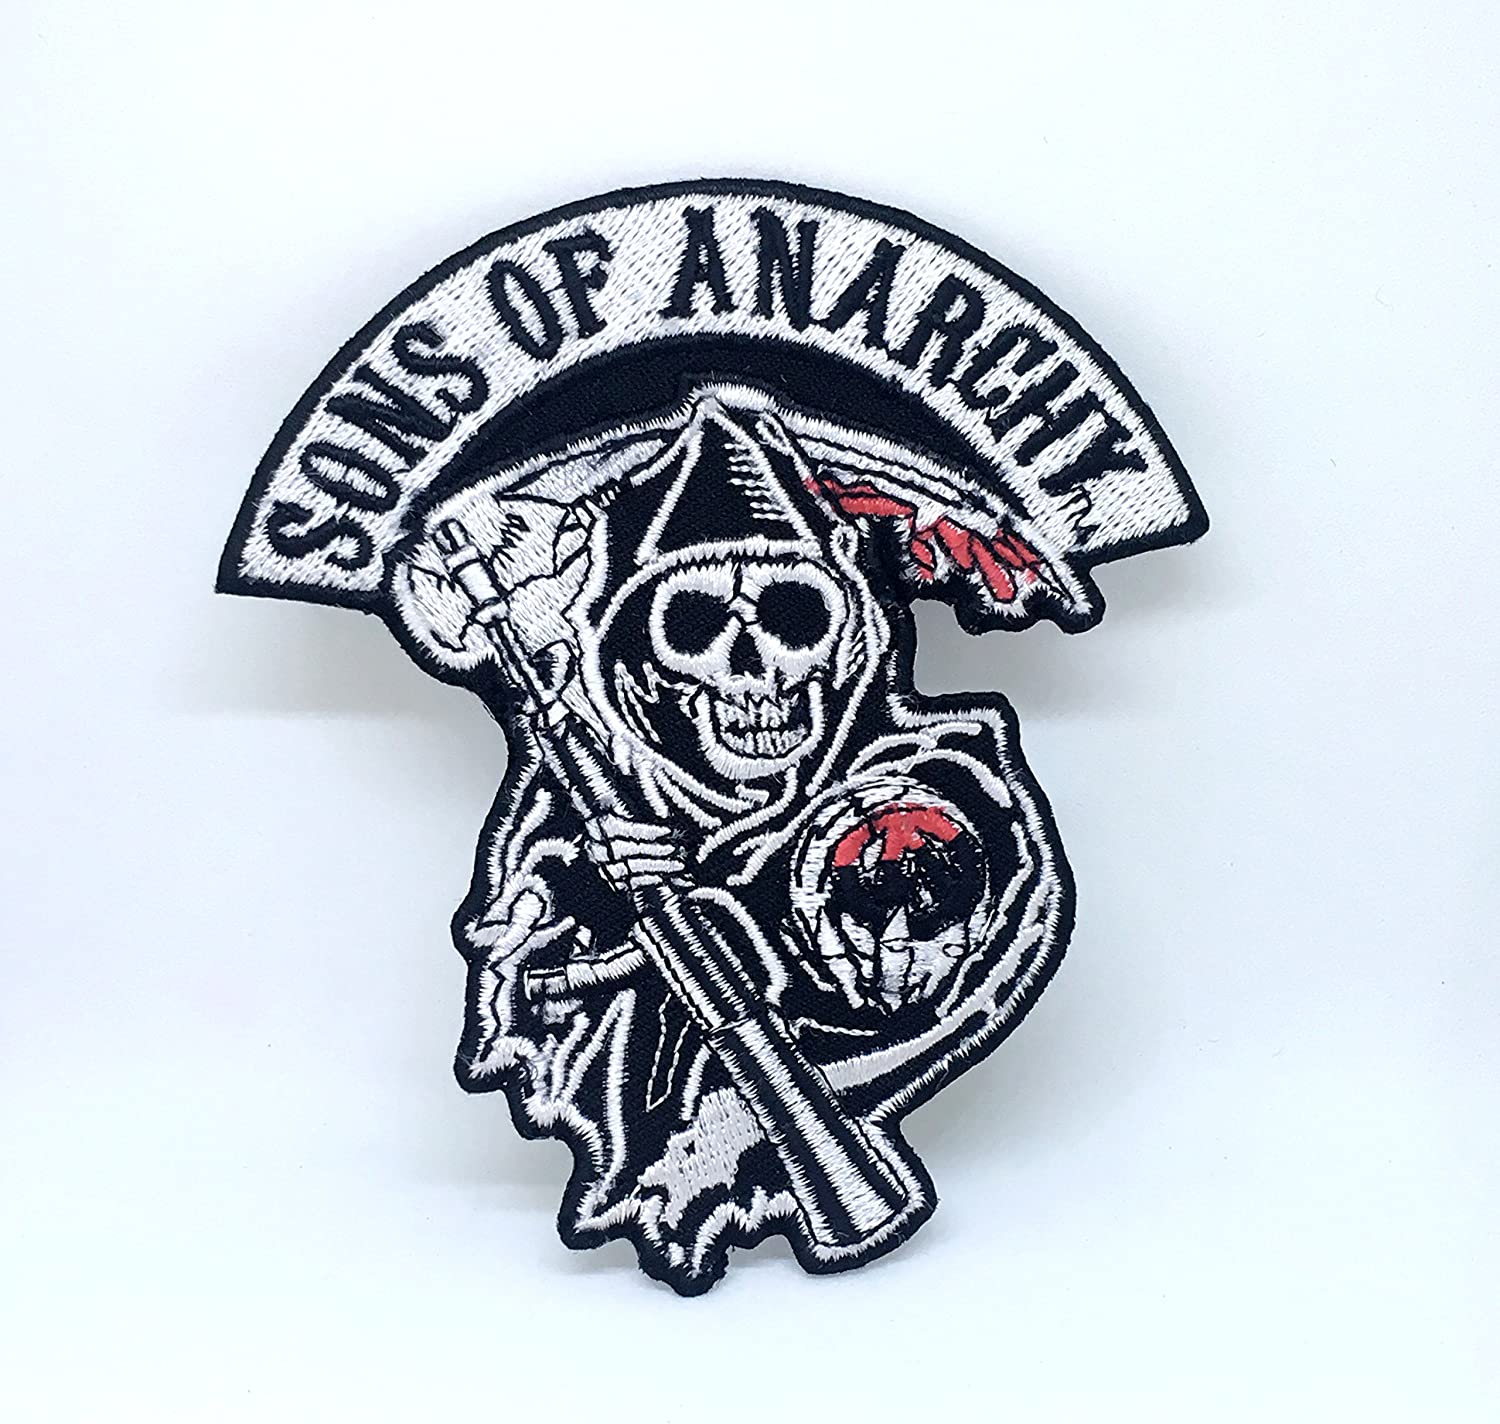 Skull Black Bikers Jacket Iron on Sew on Embroidered Patch UK Seller